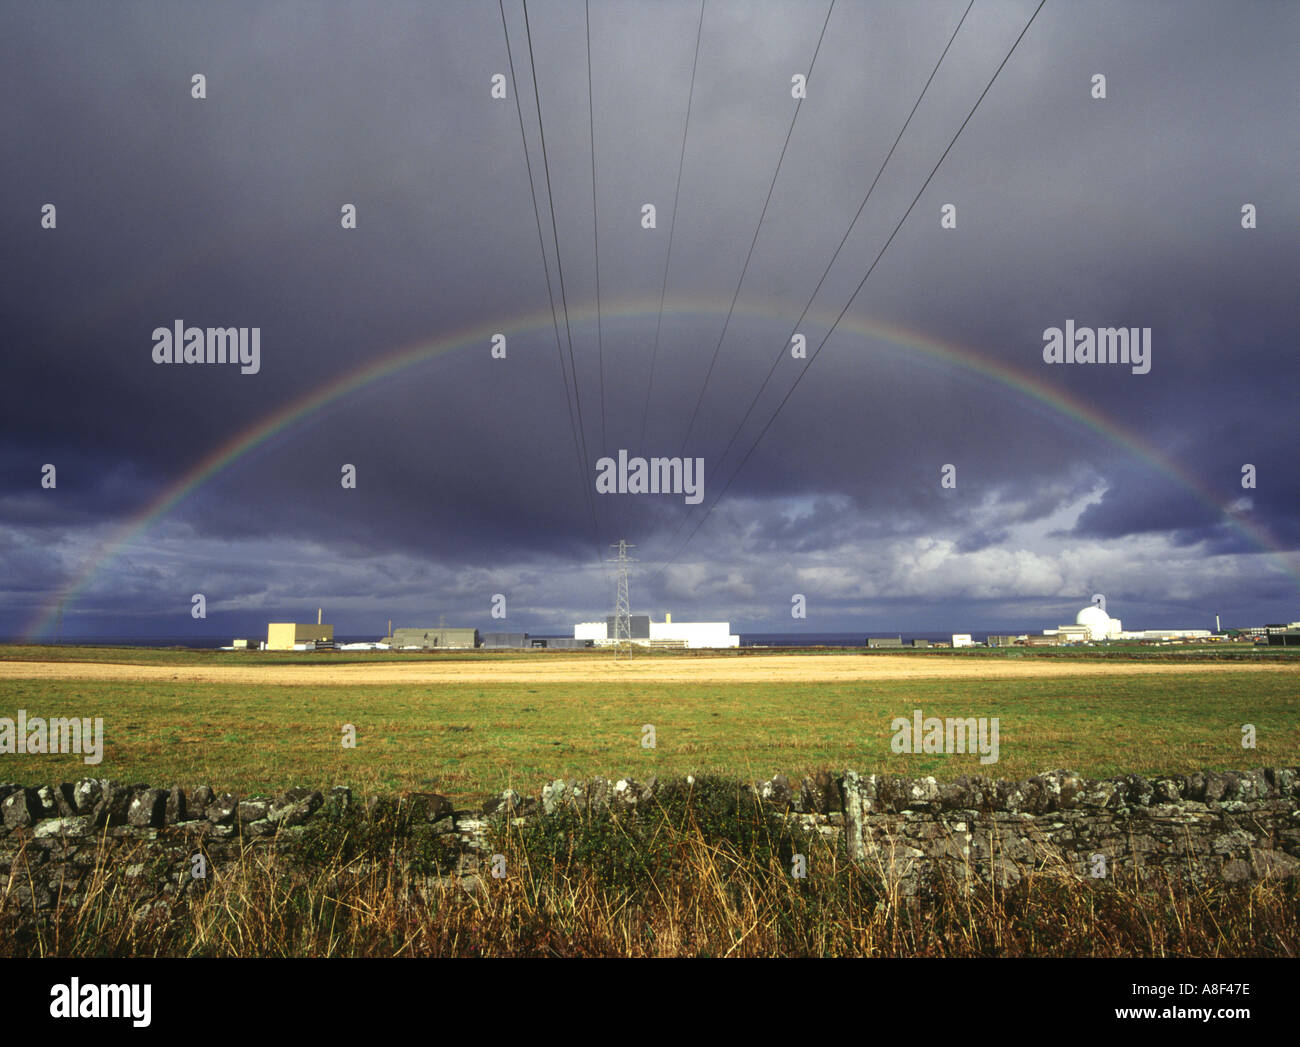 dh  DOUNREAY CAITHNESS Nuclear atomic reactor electricity power station lines rainbow black cloud - Stock Image